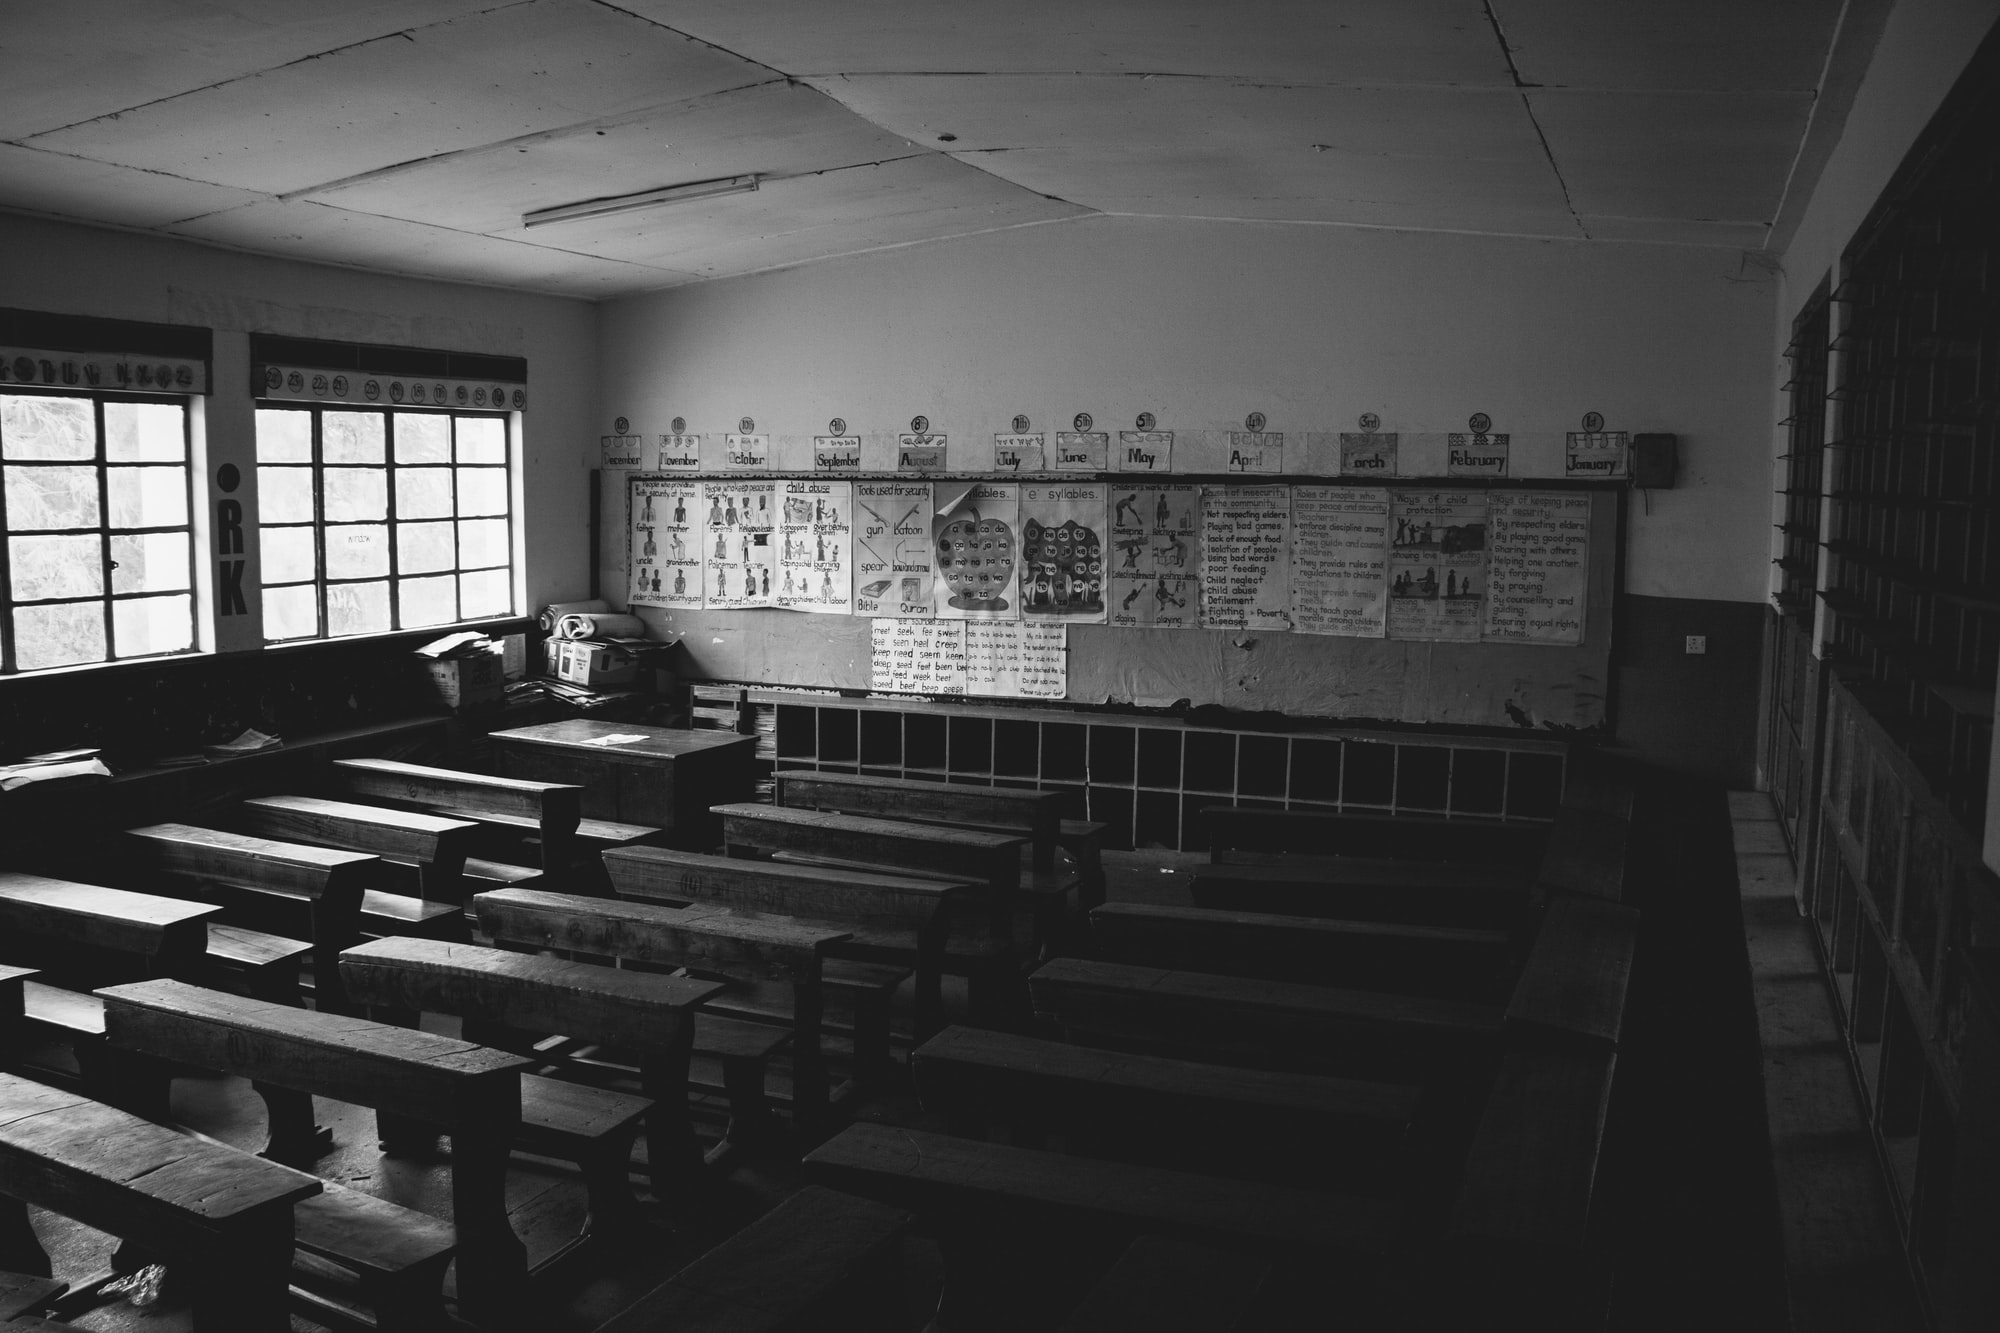 Opportunities and challenges in reopening educational institutions in India